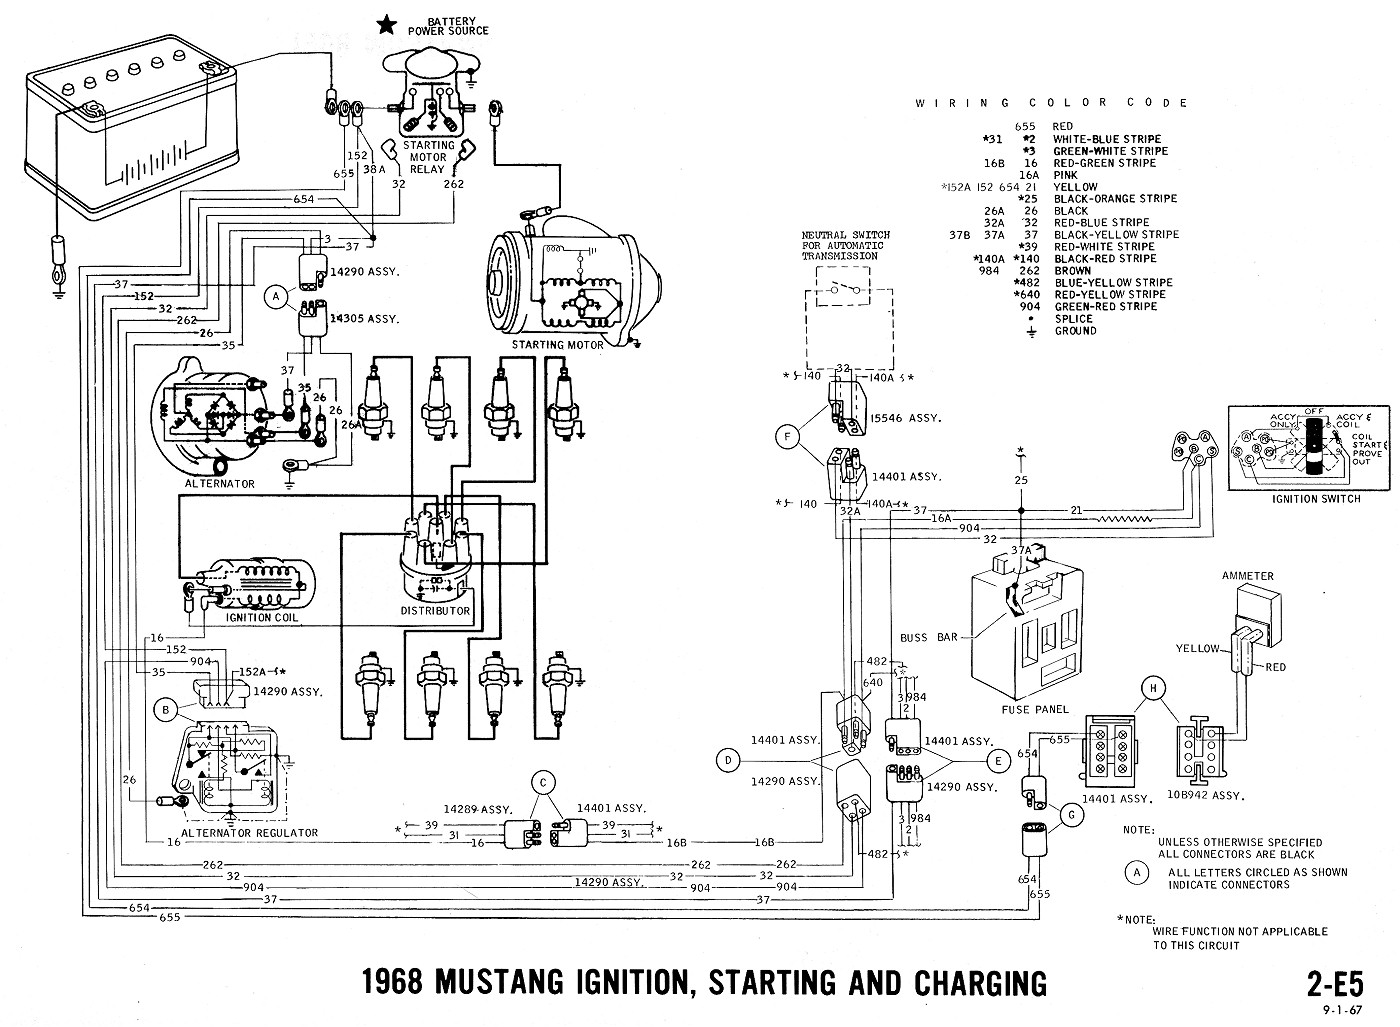 hight resolution of 1970 mustang coil to fuse box wiring diagrams 93 mustang fuse panel 1970 mustang fuse panel diagram